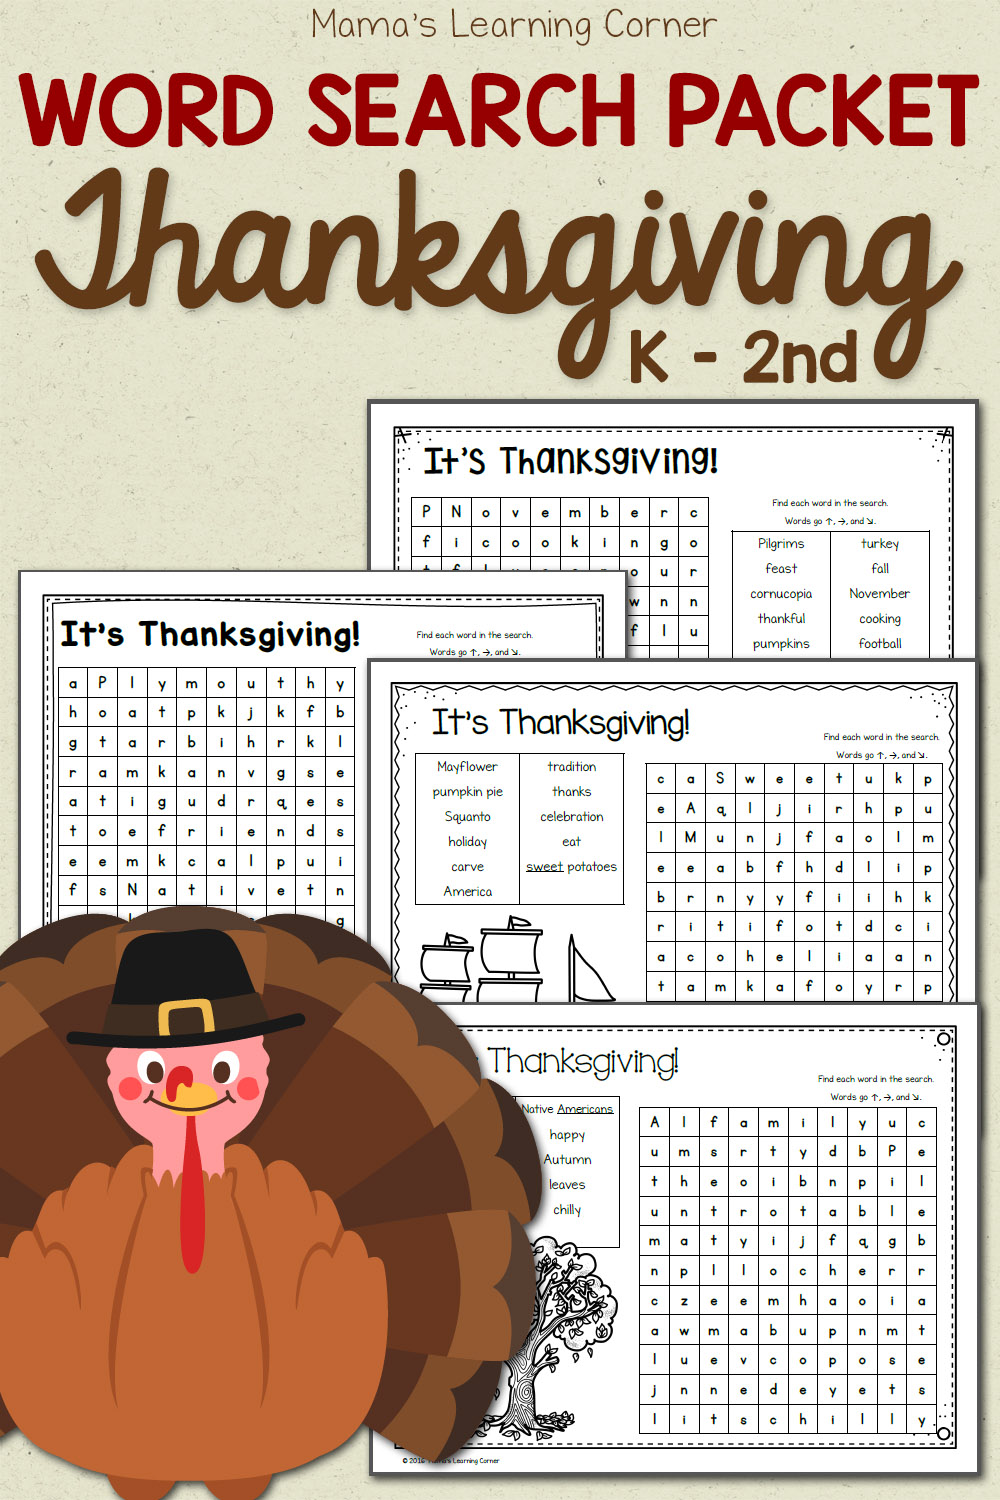 Thanksgiving Word Search Packet - Mamas Learning Corner